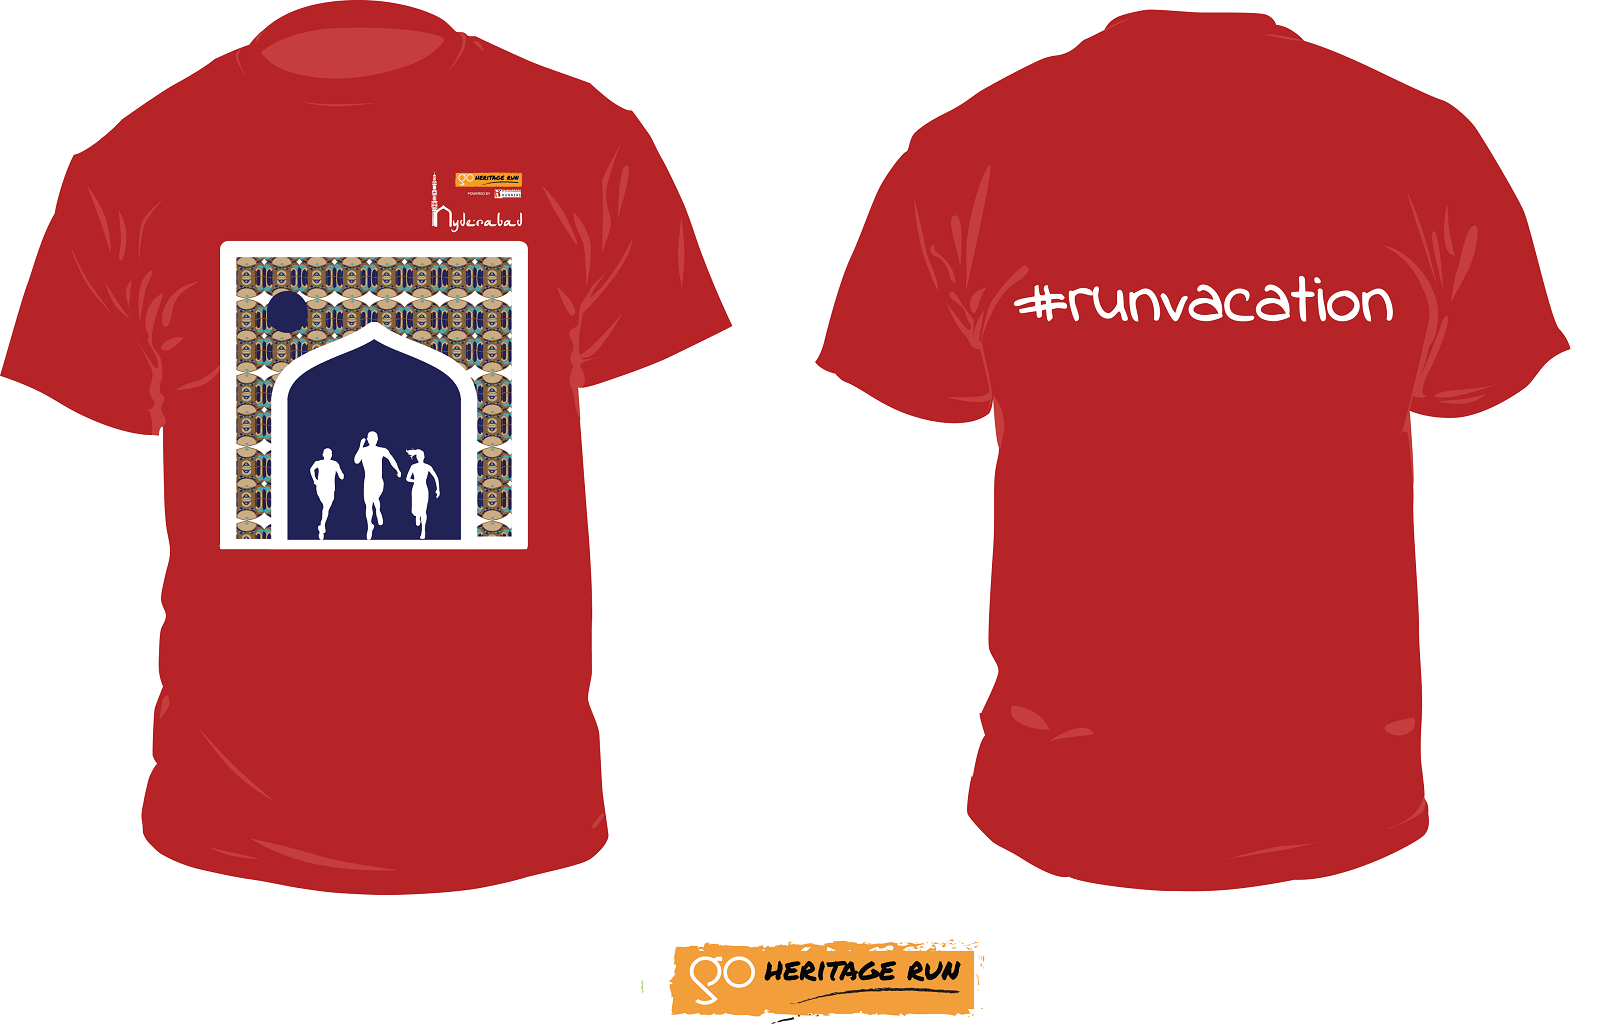 GHR Hyderabad 2017 Run T-shirt